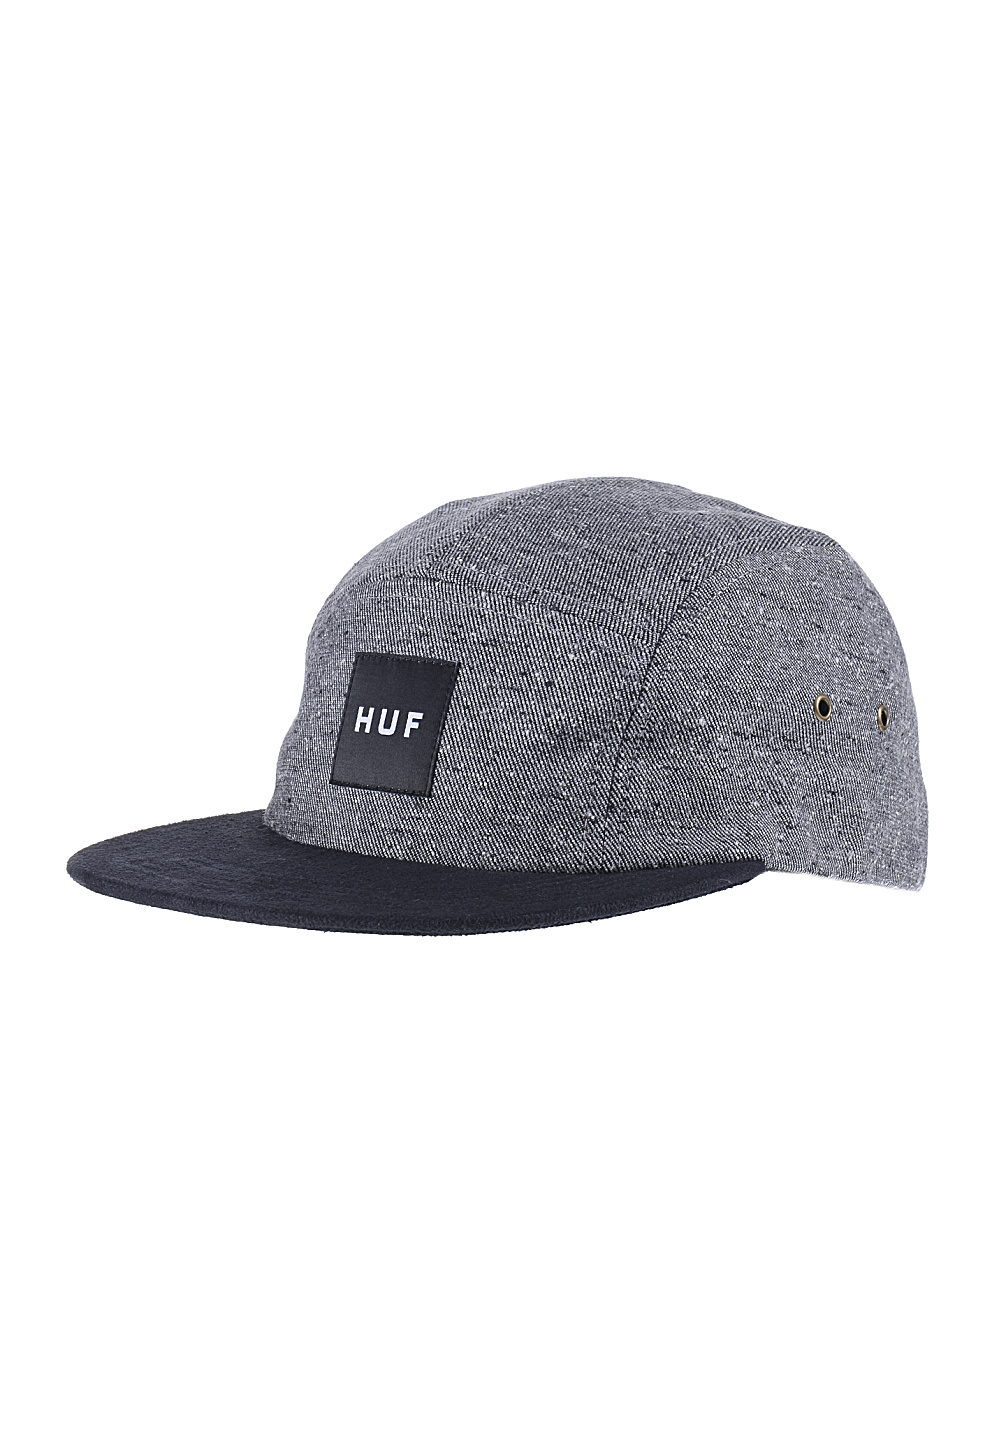 huf tweed volley casquette pour homme gris planet sports. Black Bedroom Furniture Sets. Home Design Ideas